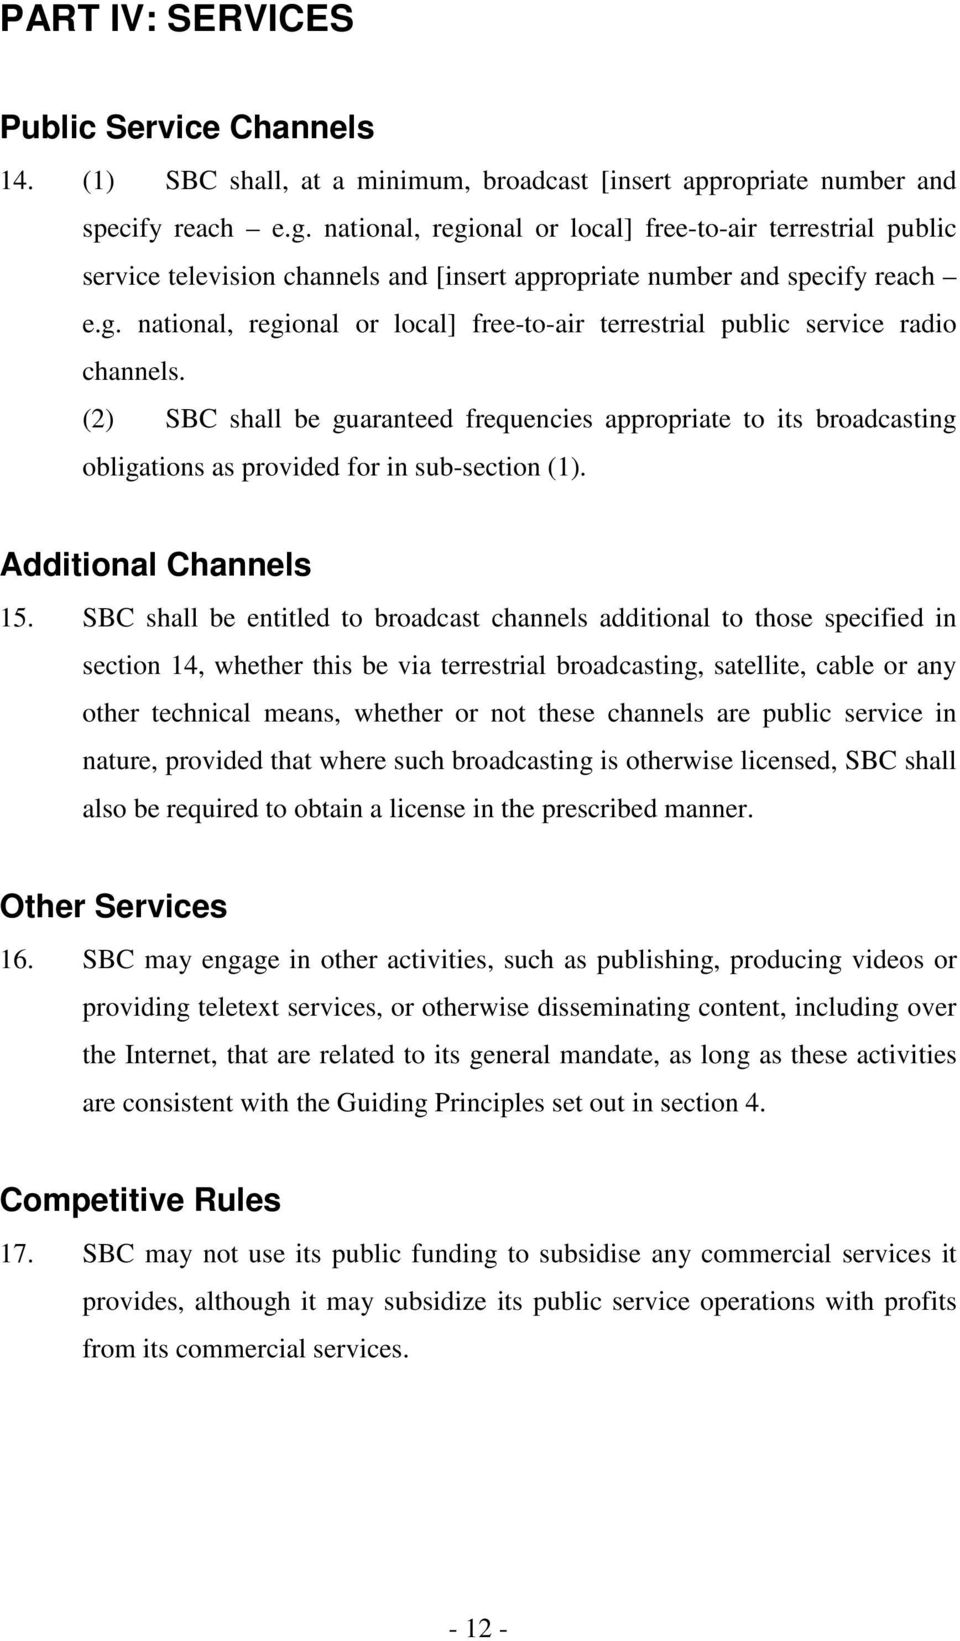 (2) SBC shall be guaranteed frequencies appropriate to its broadcasting obligations as provided for in sub-section (1). Additional Channels 15.